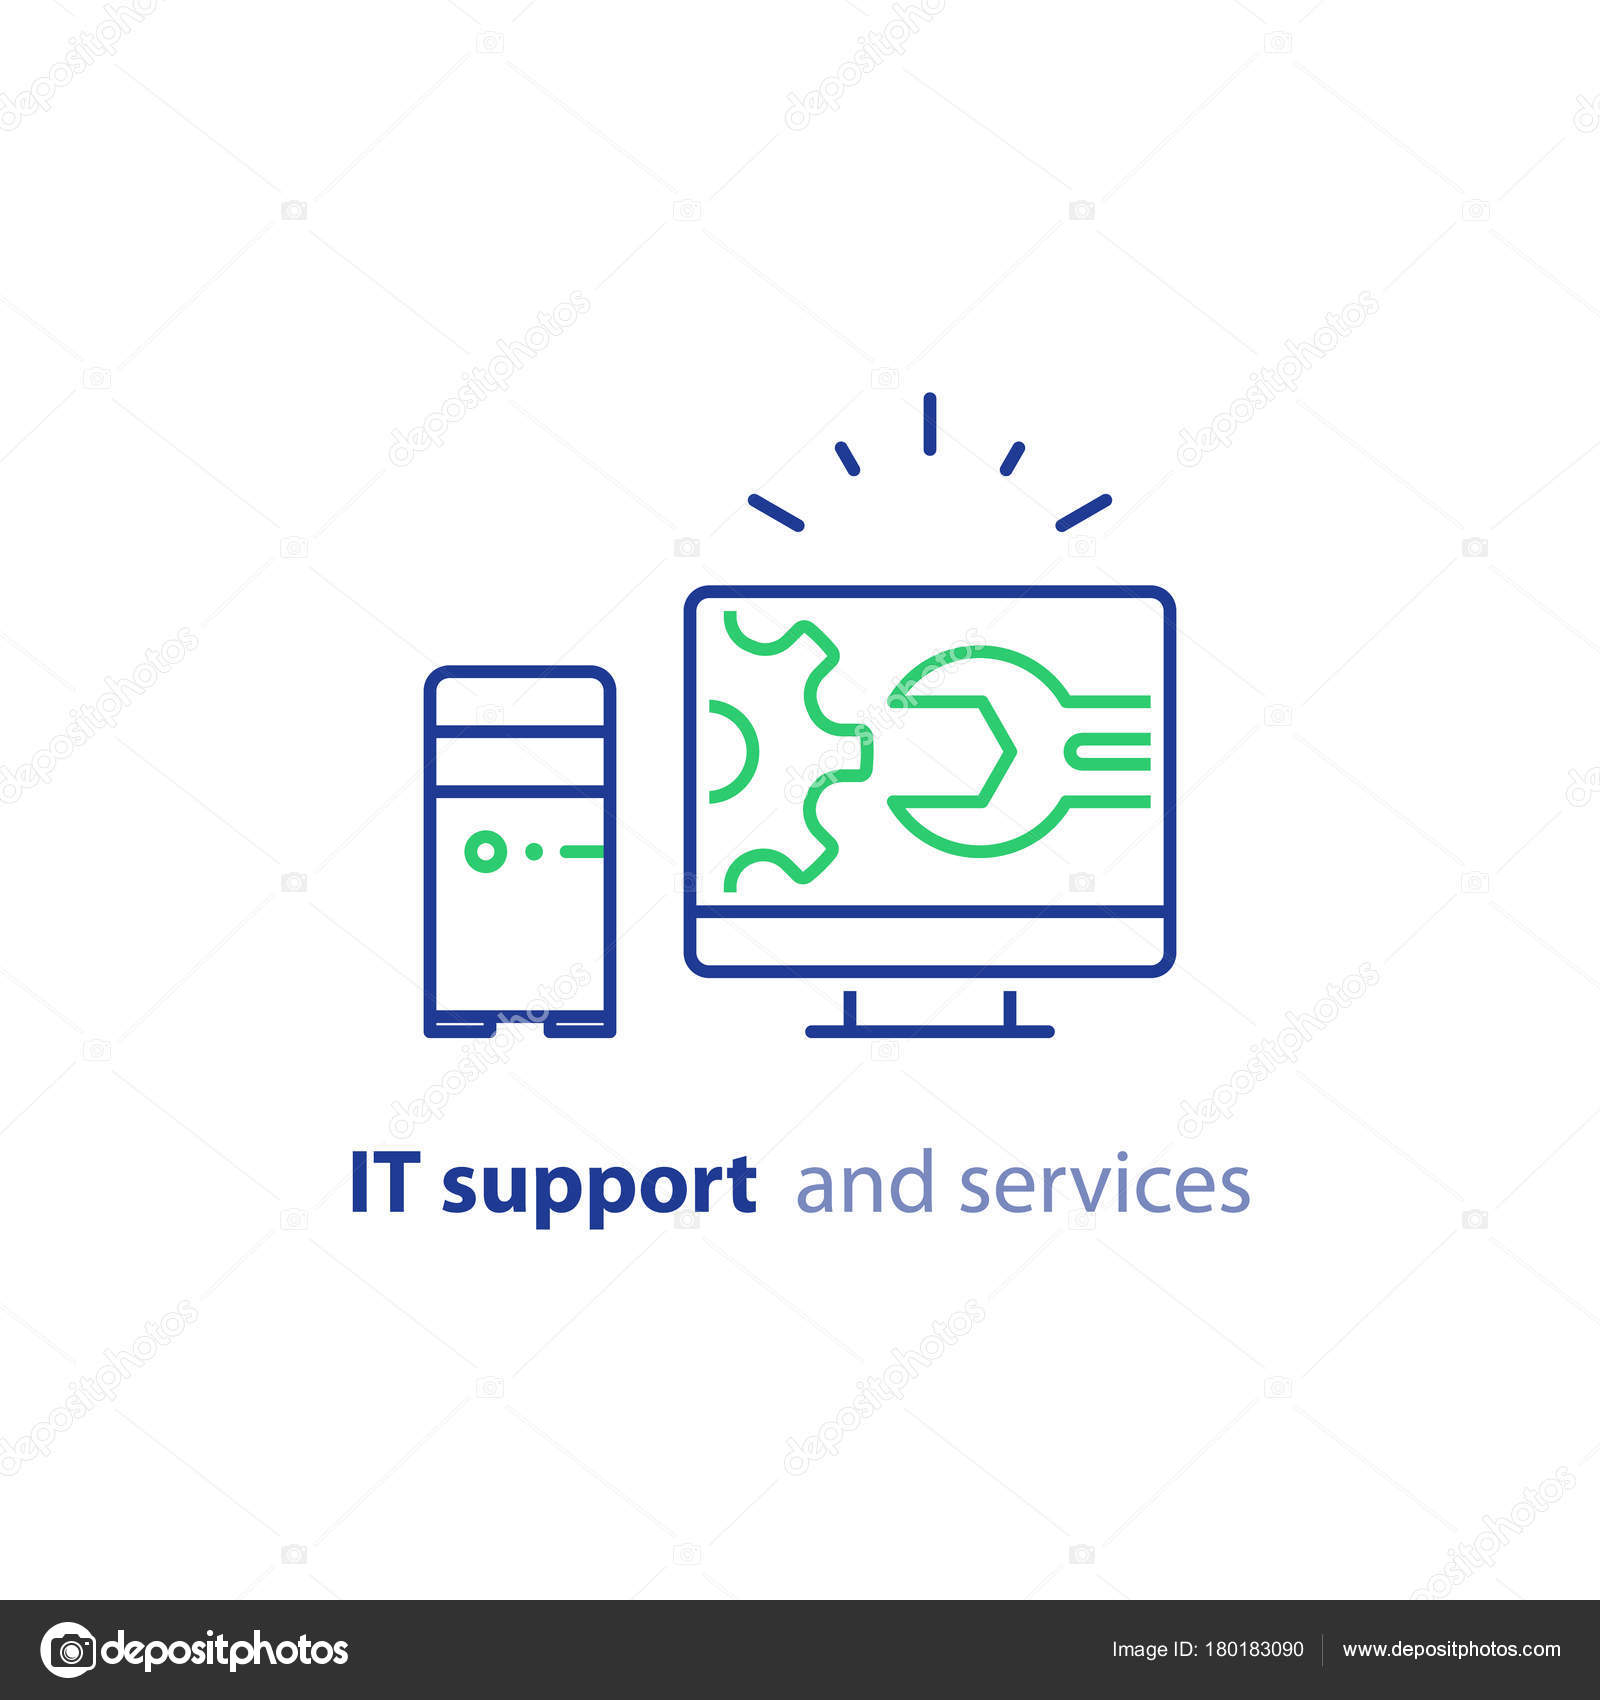 IT Support Concept Software Development System Administration Desktop Upgrade And Update Program Installation Vector Line Icon By Stmool